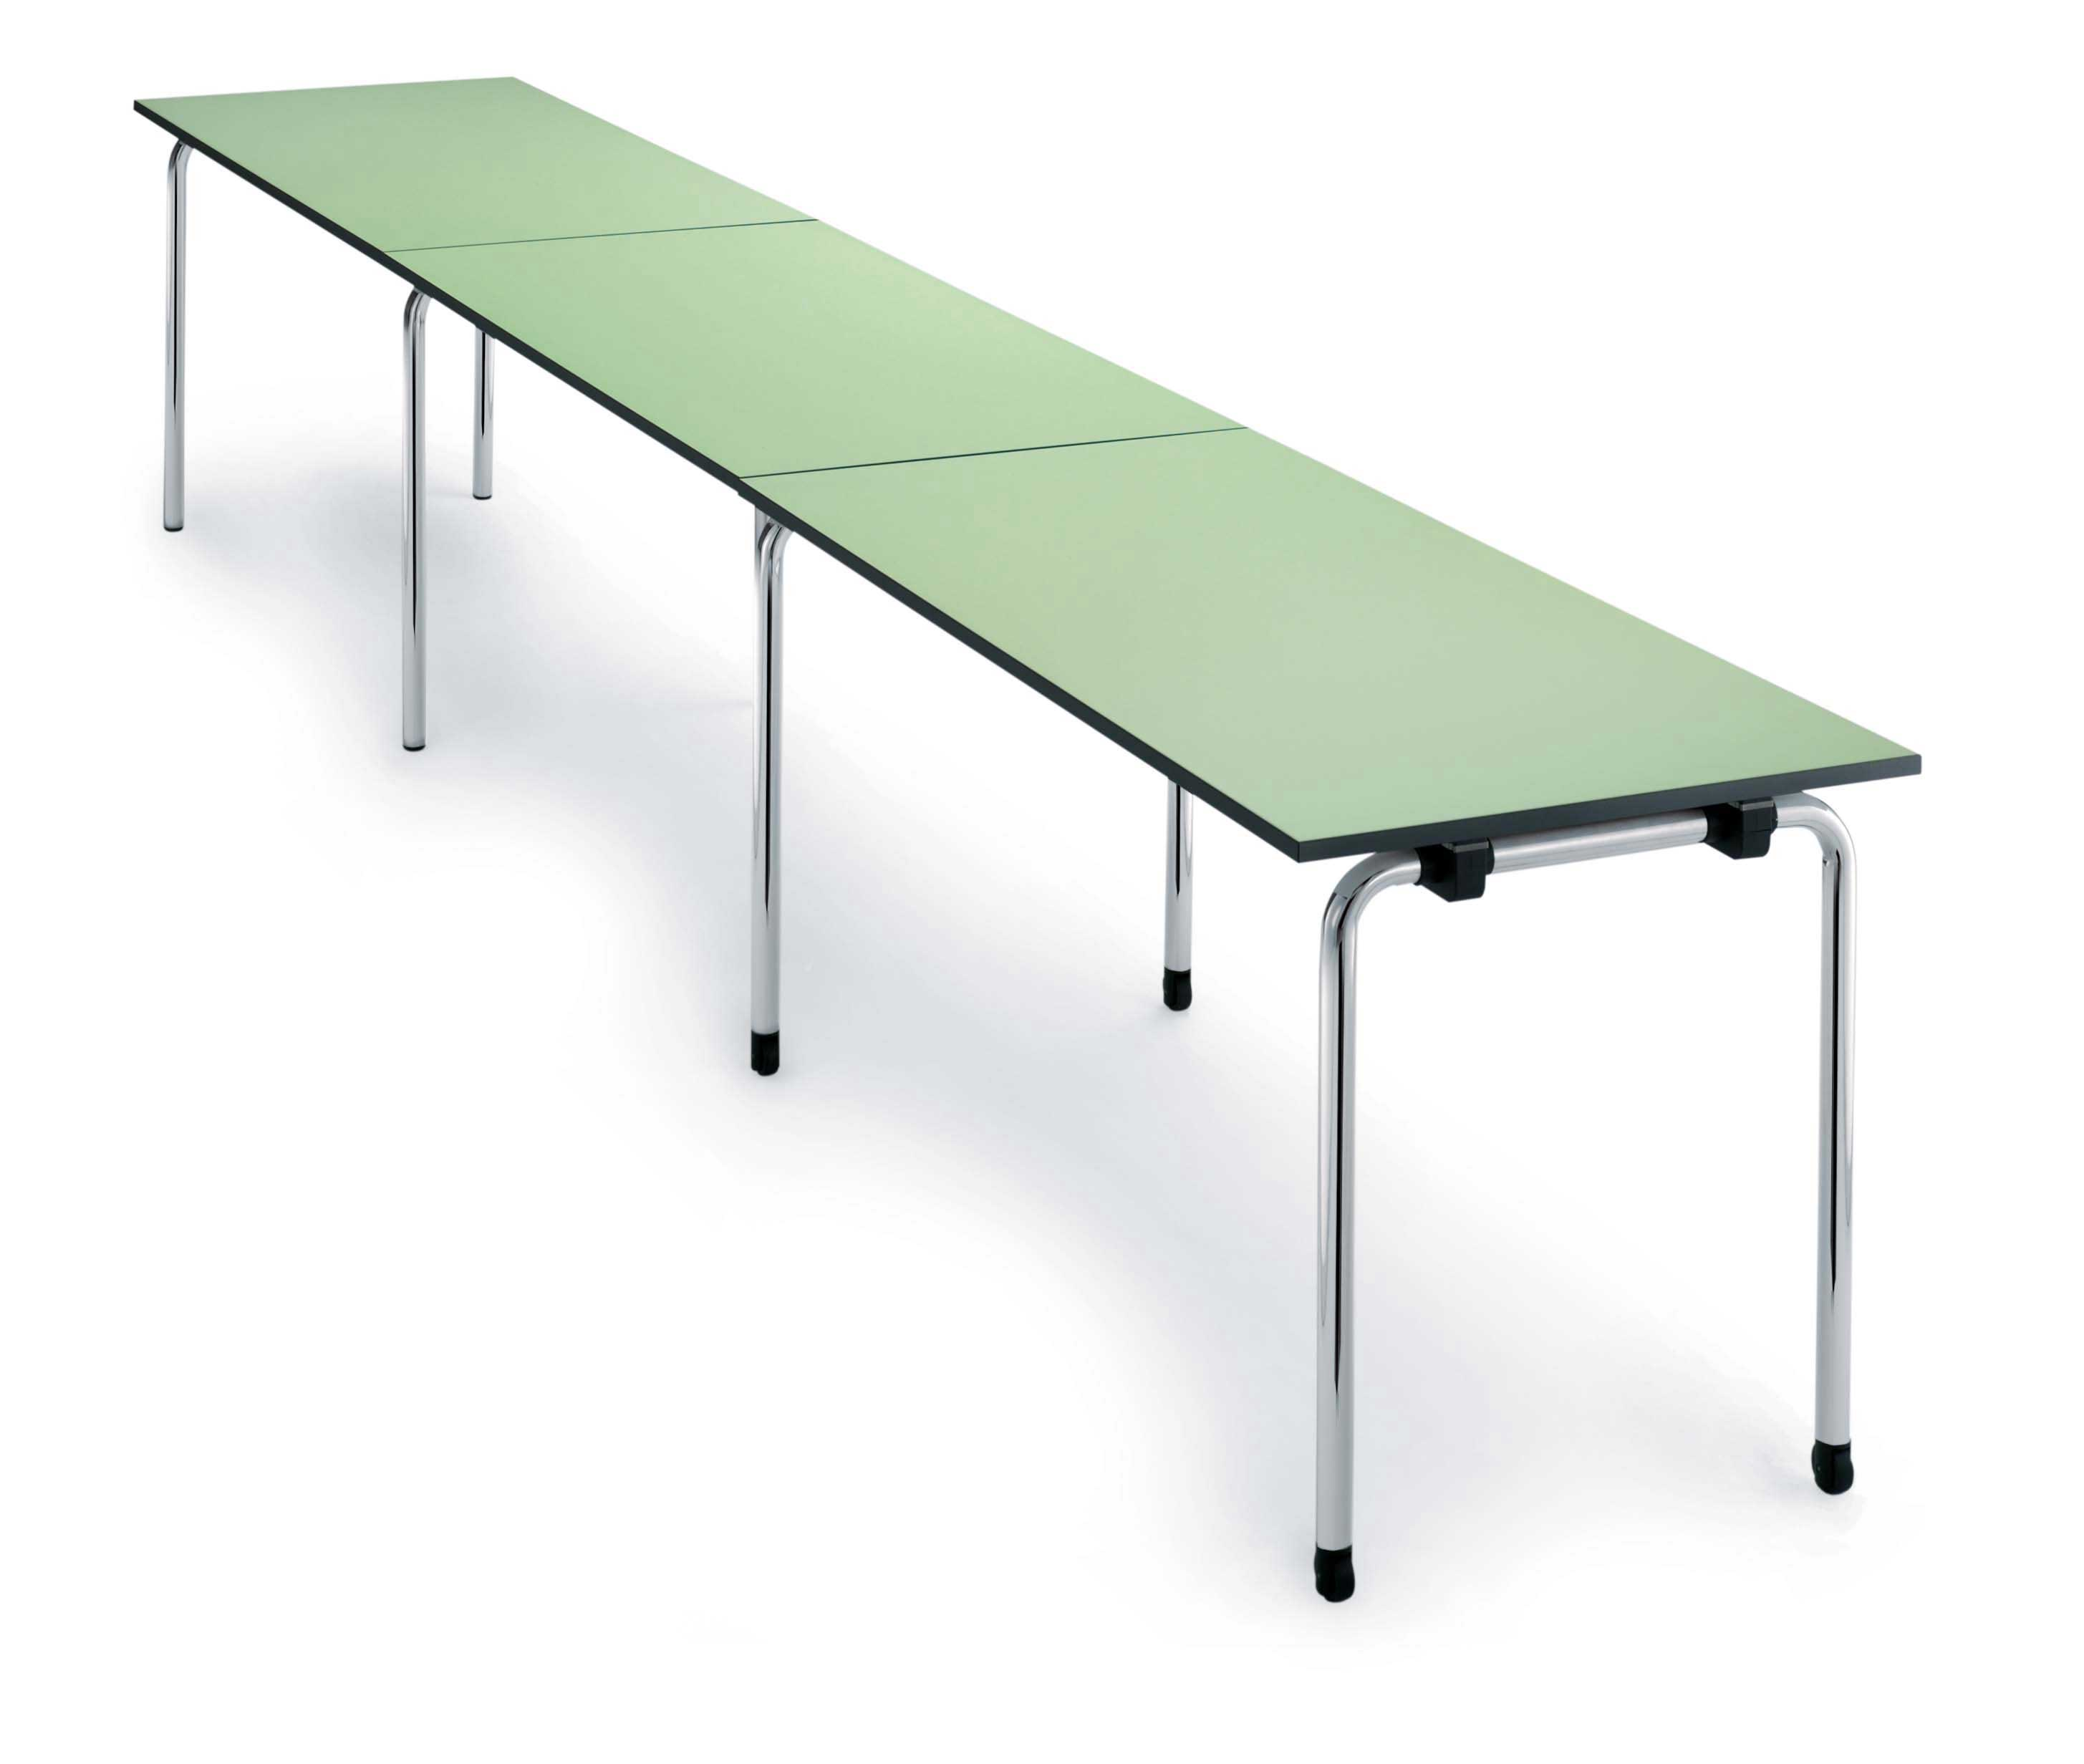 elegant and slim modern folding table design